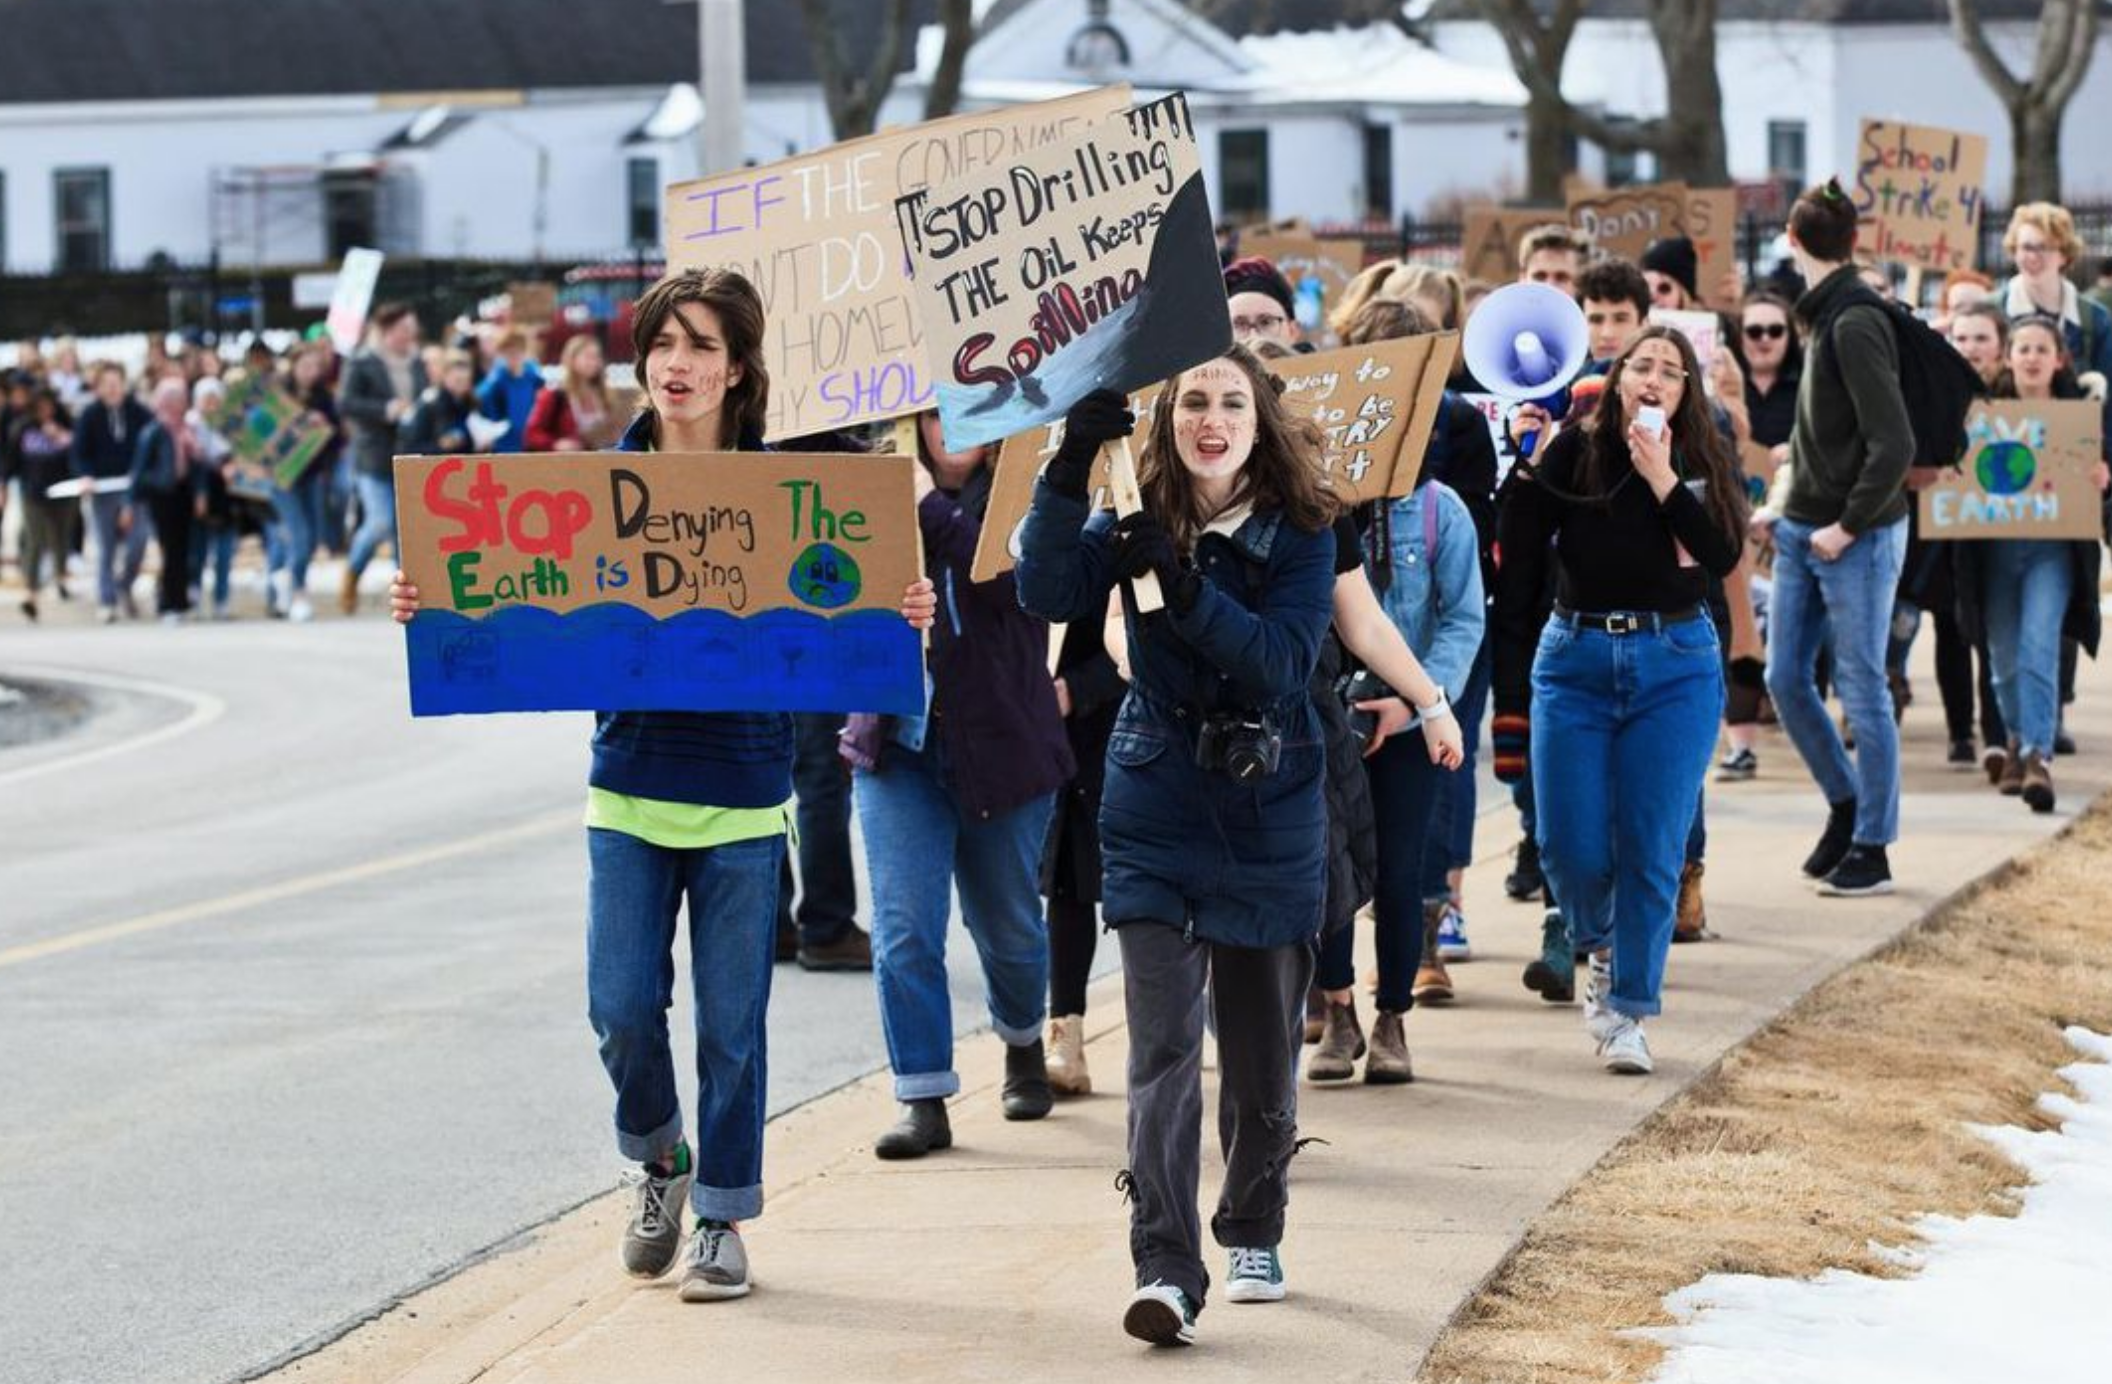 NOVA SCOTIA - Hundreds marched in Halifax, heading to City Hall then to Province House, the provincial legislative building. Halifax is one of two cities in Canada to have declared a climate emergency.